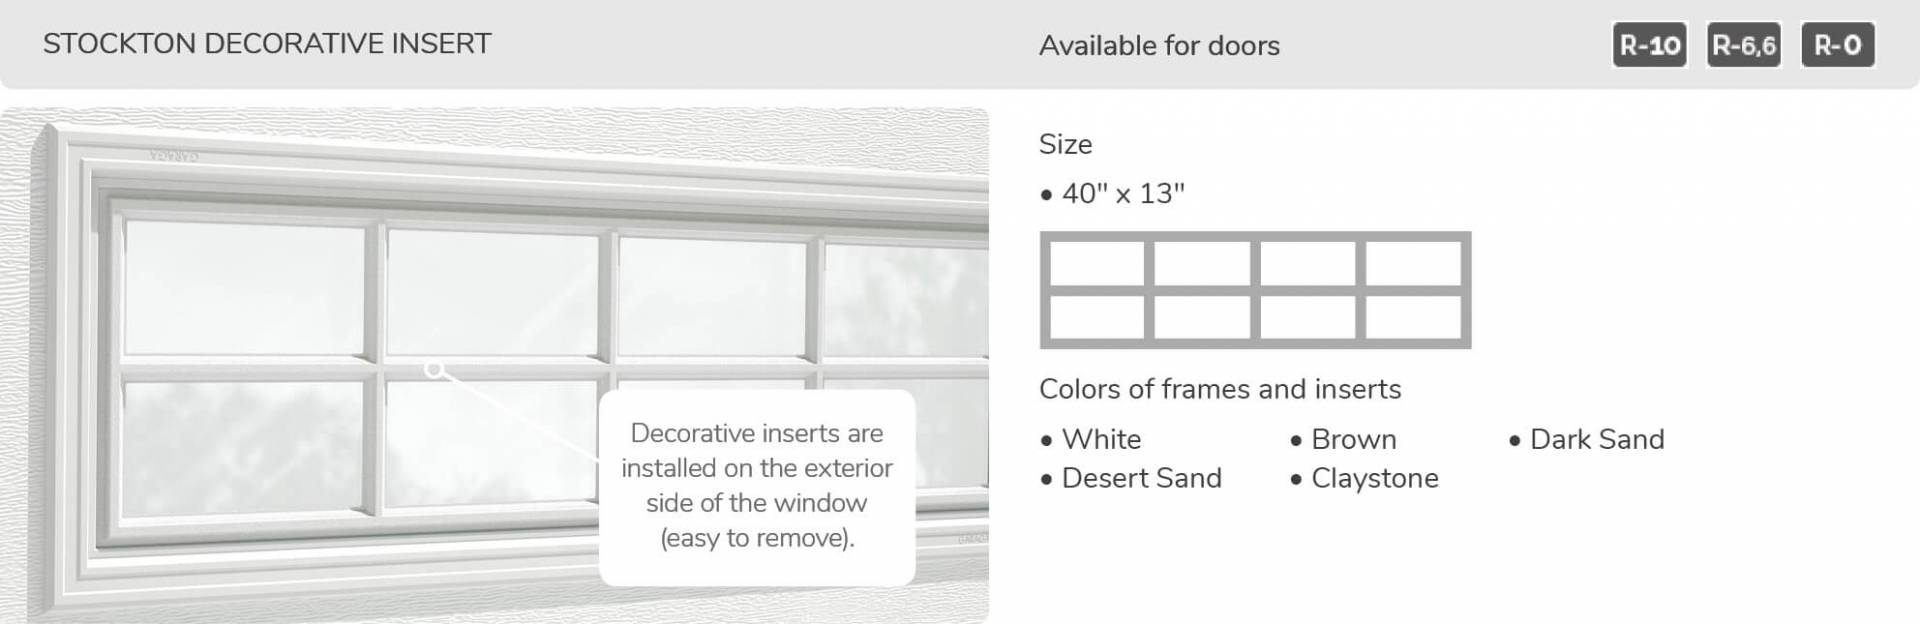 "Stockton Decorative Insert, 40"" x 13"", available for doors R-10, R-6.6, R-0"